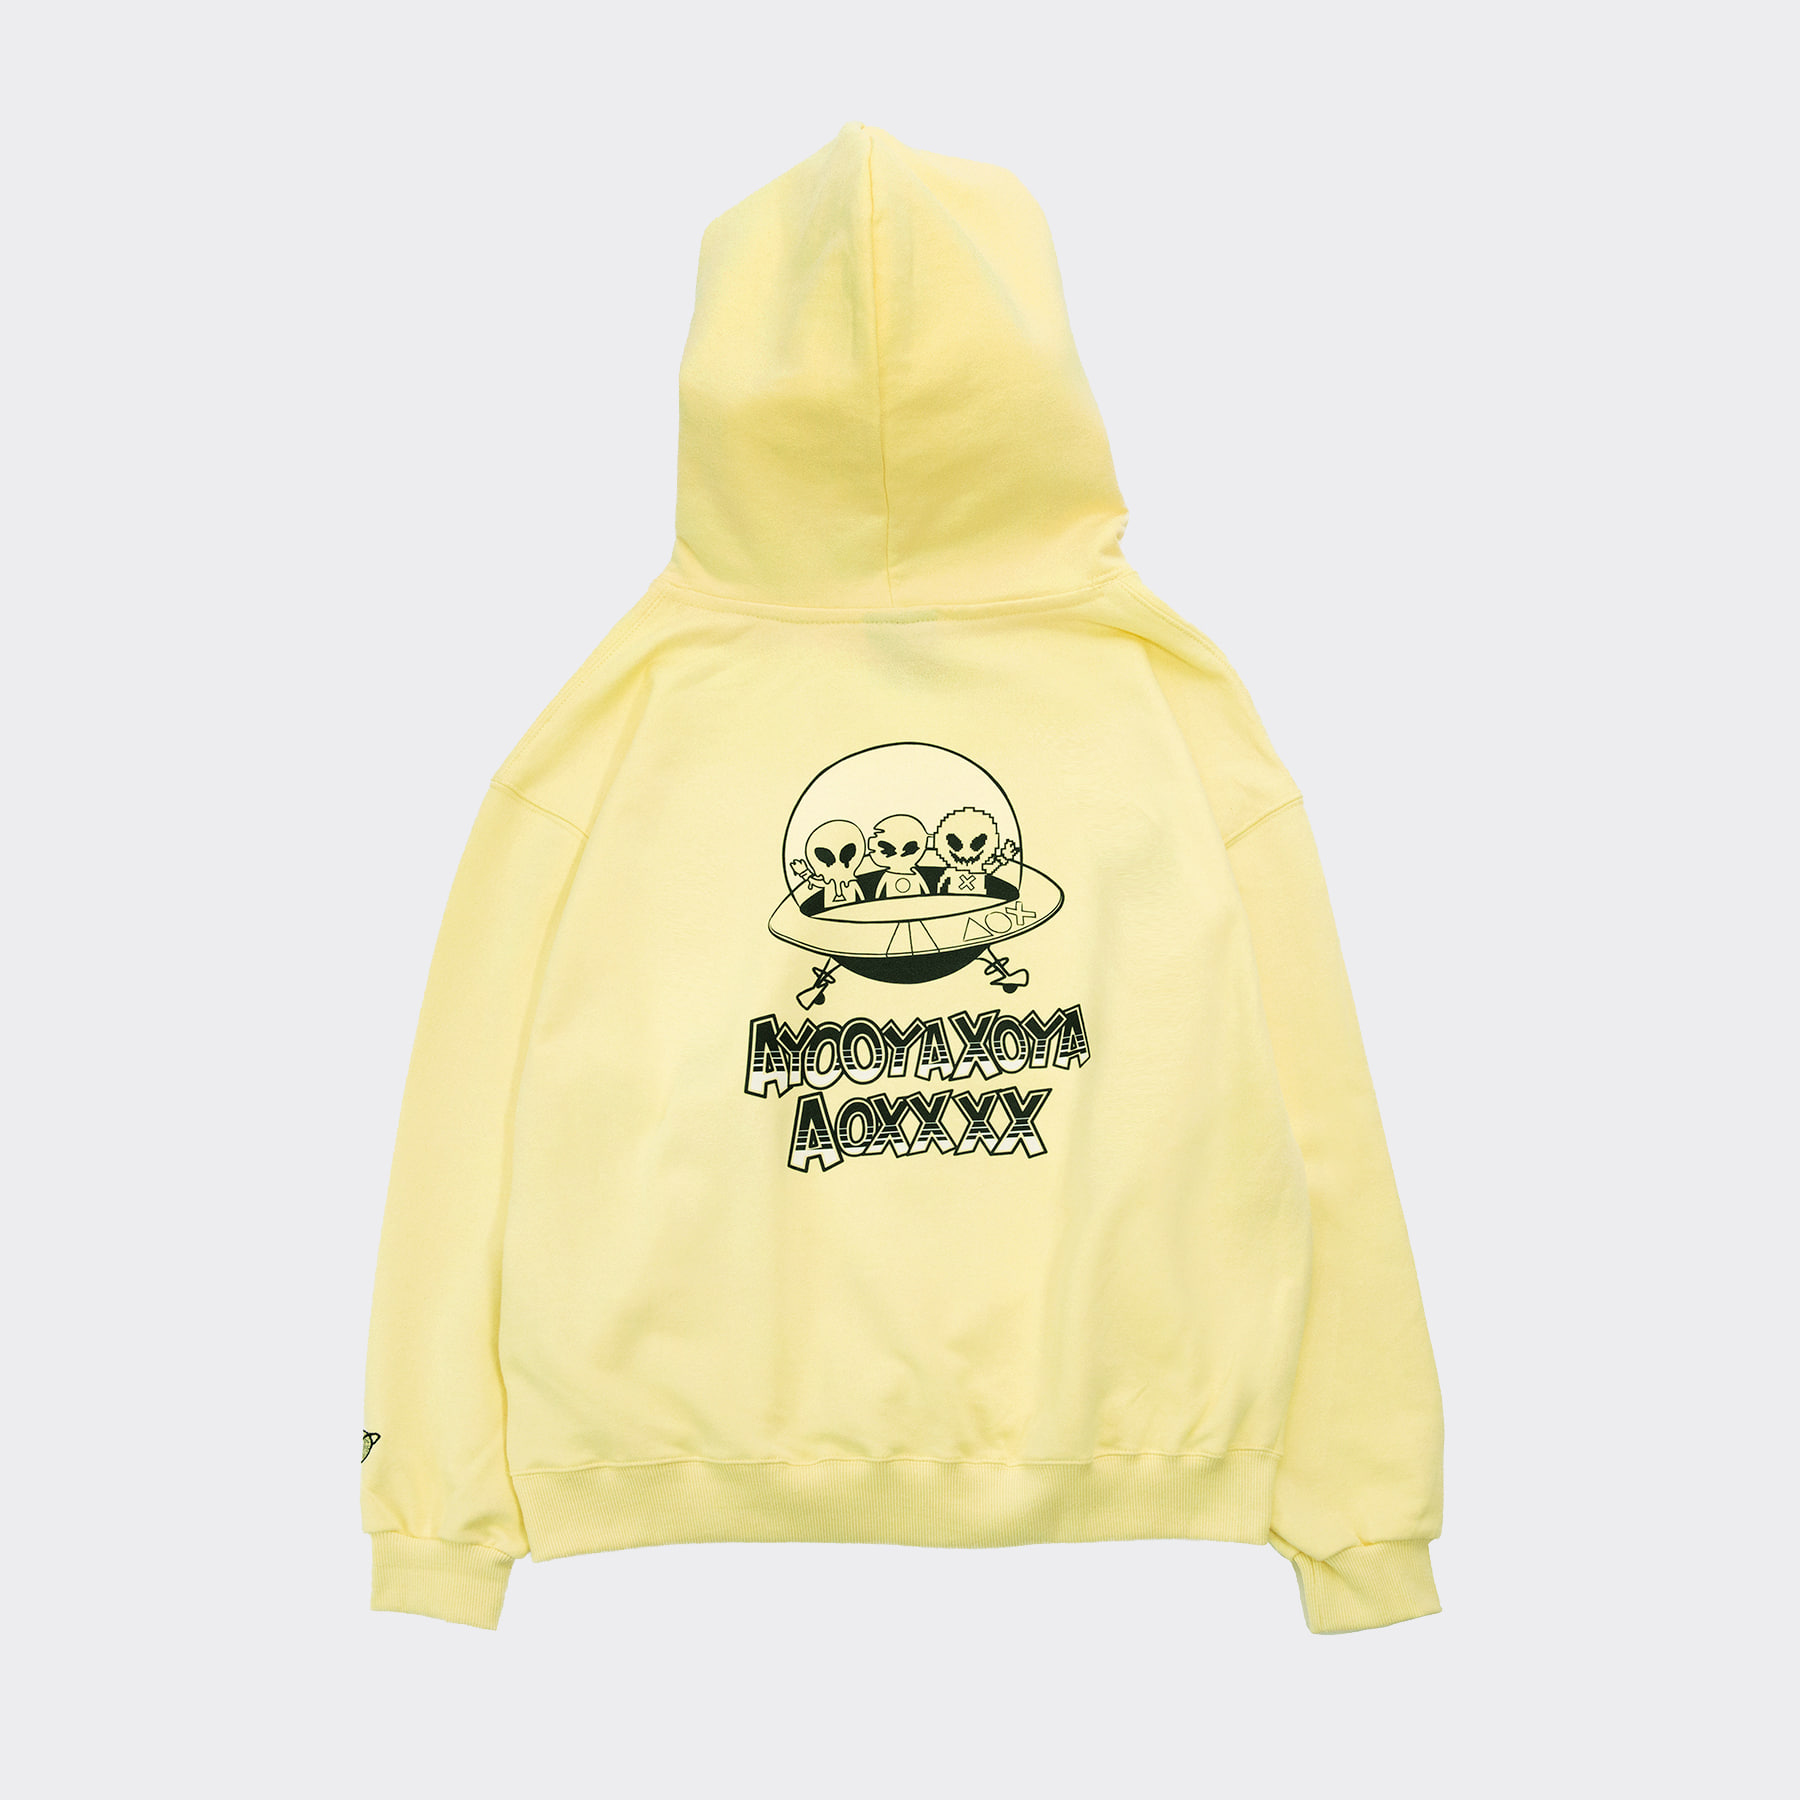 CARTOON Hoodie(Oversize fit) Yellow